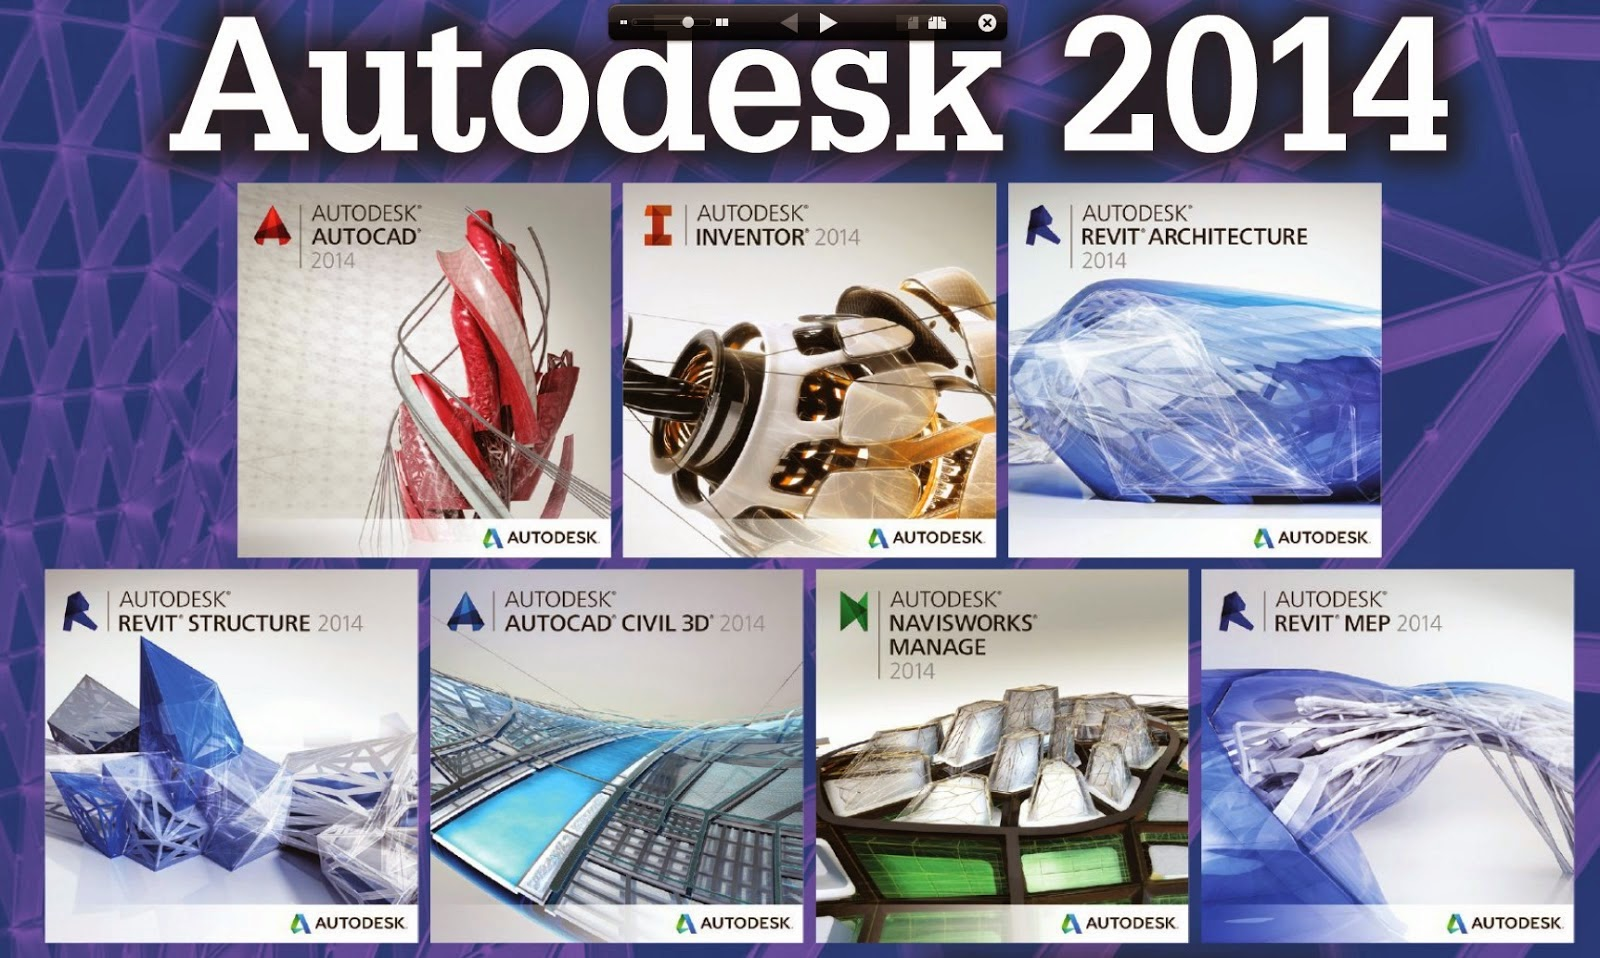 DOWNLOAD FREE: AUTODESK BUILDING DESIGN SUITE PREMIUM 2014 TRIAL